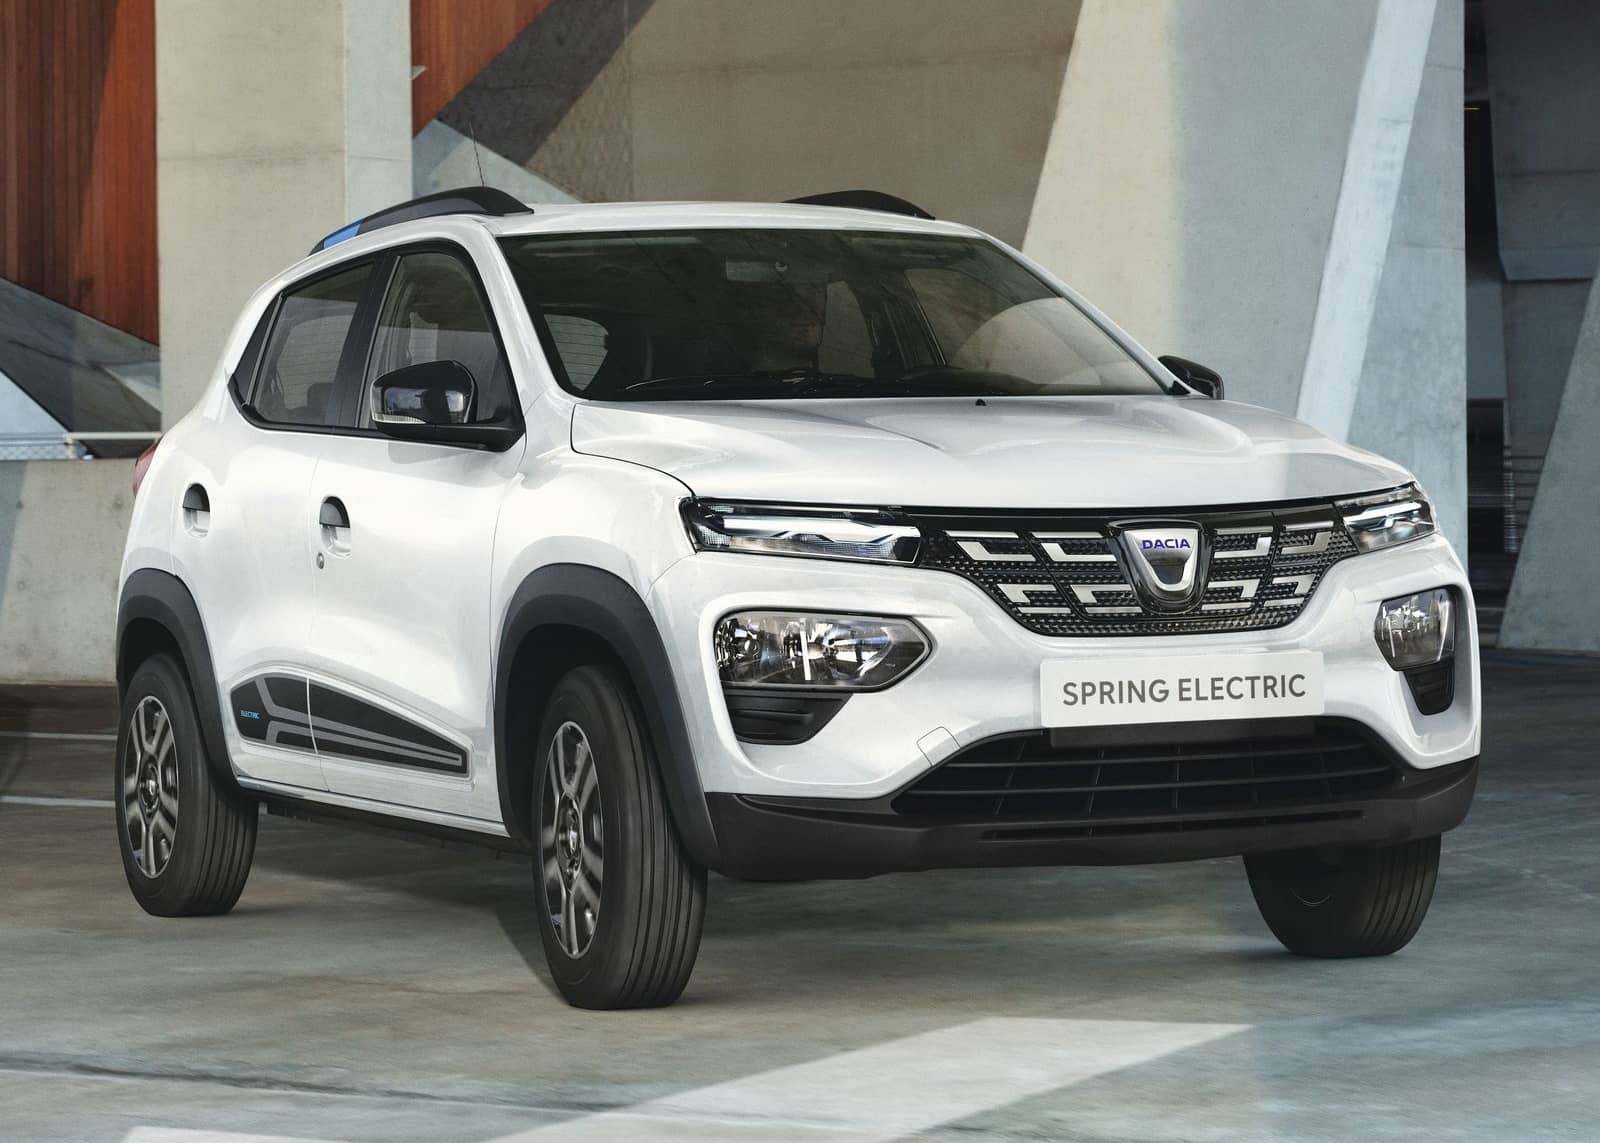 Dacia-Spring_Electric-2022-1600-01